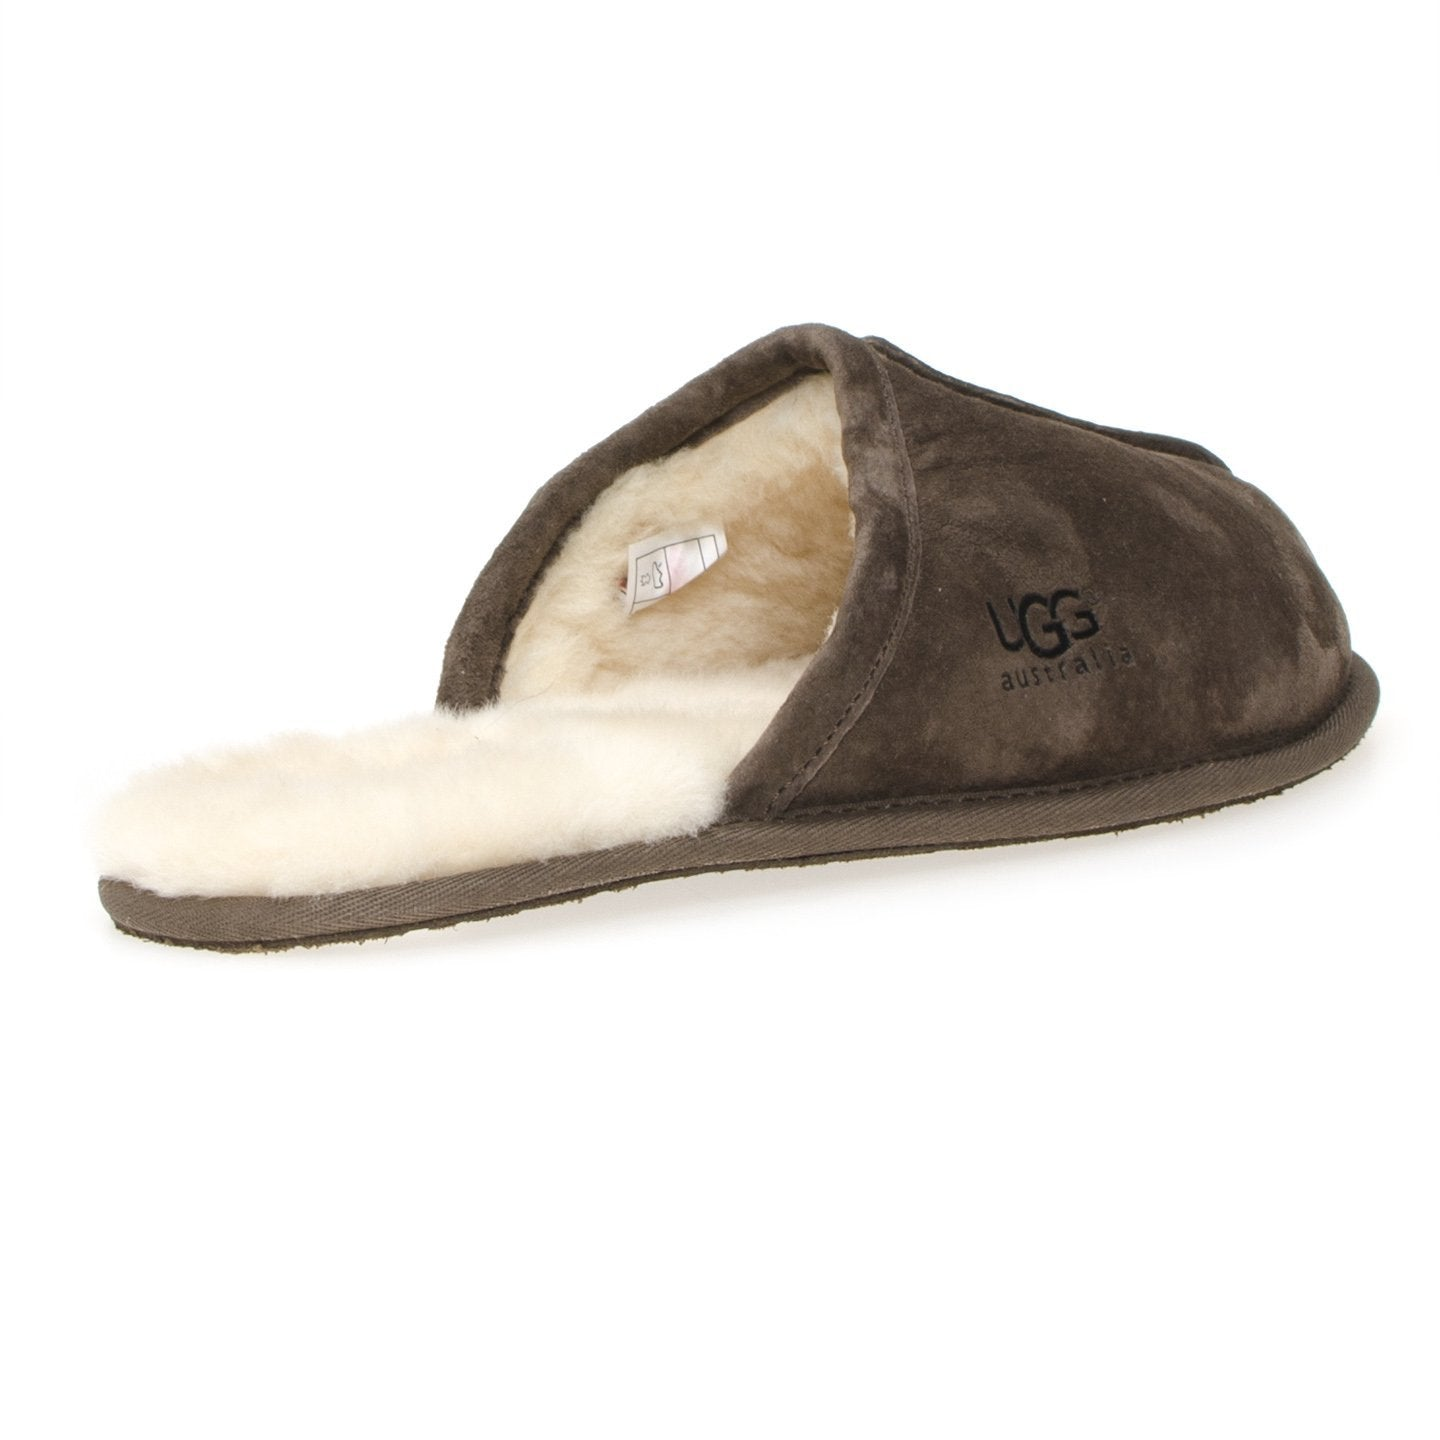 45e7827e919e UGG Tasman Chocolate Slippers - Men`s - MyCozyBoots